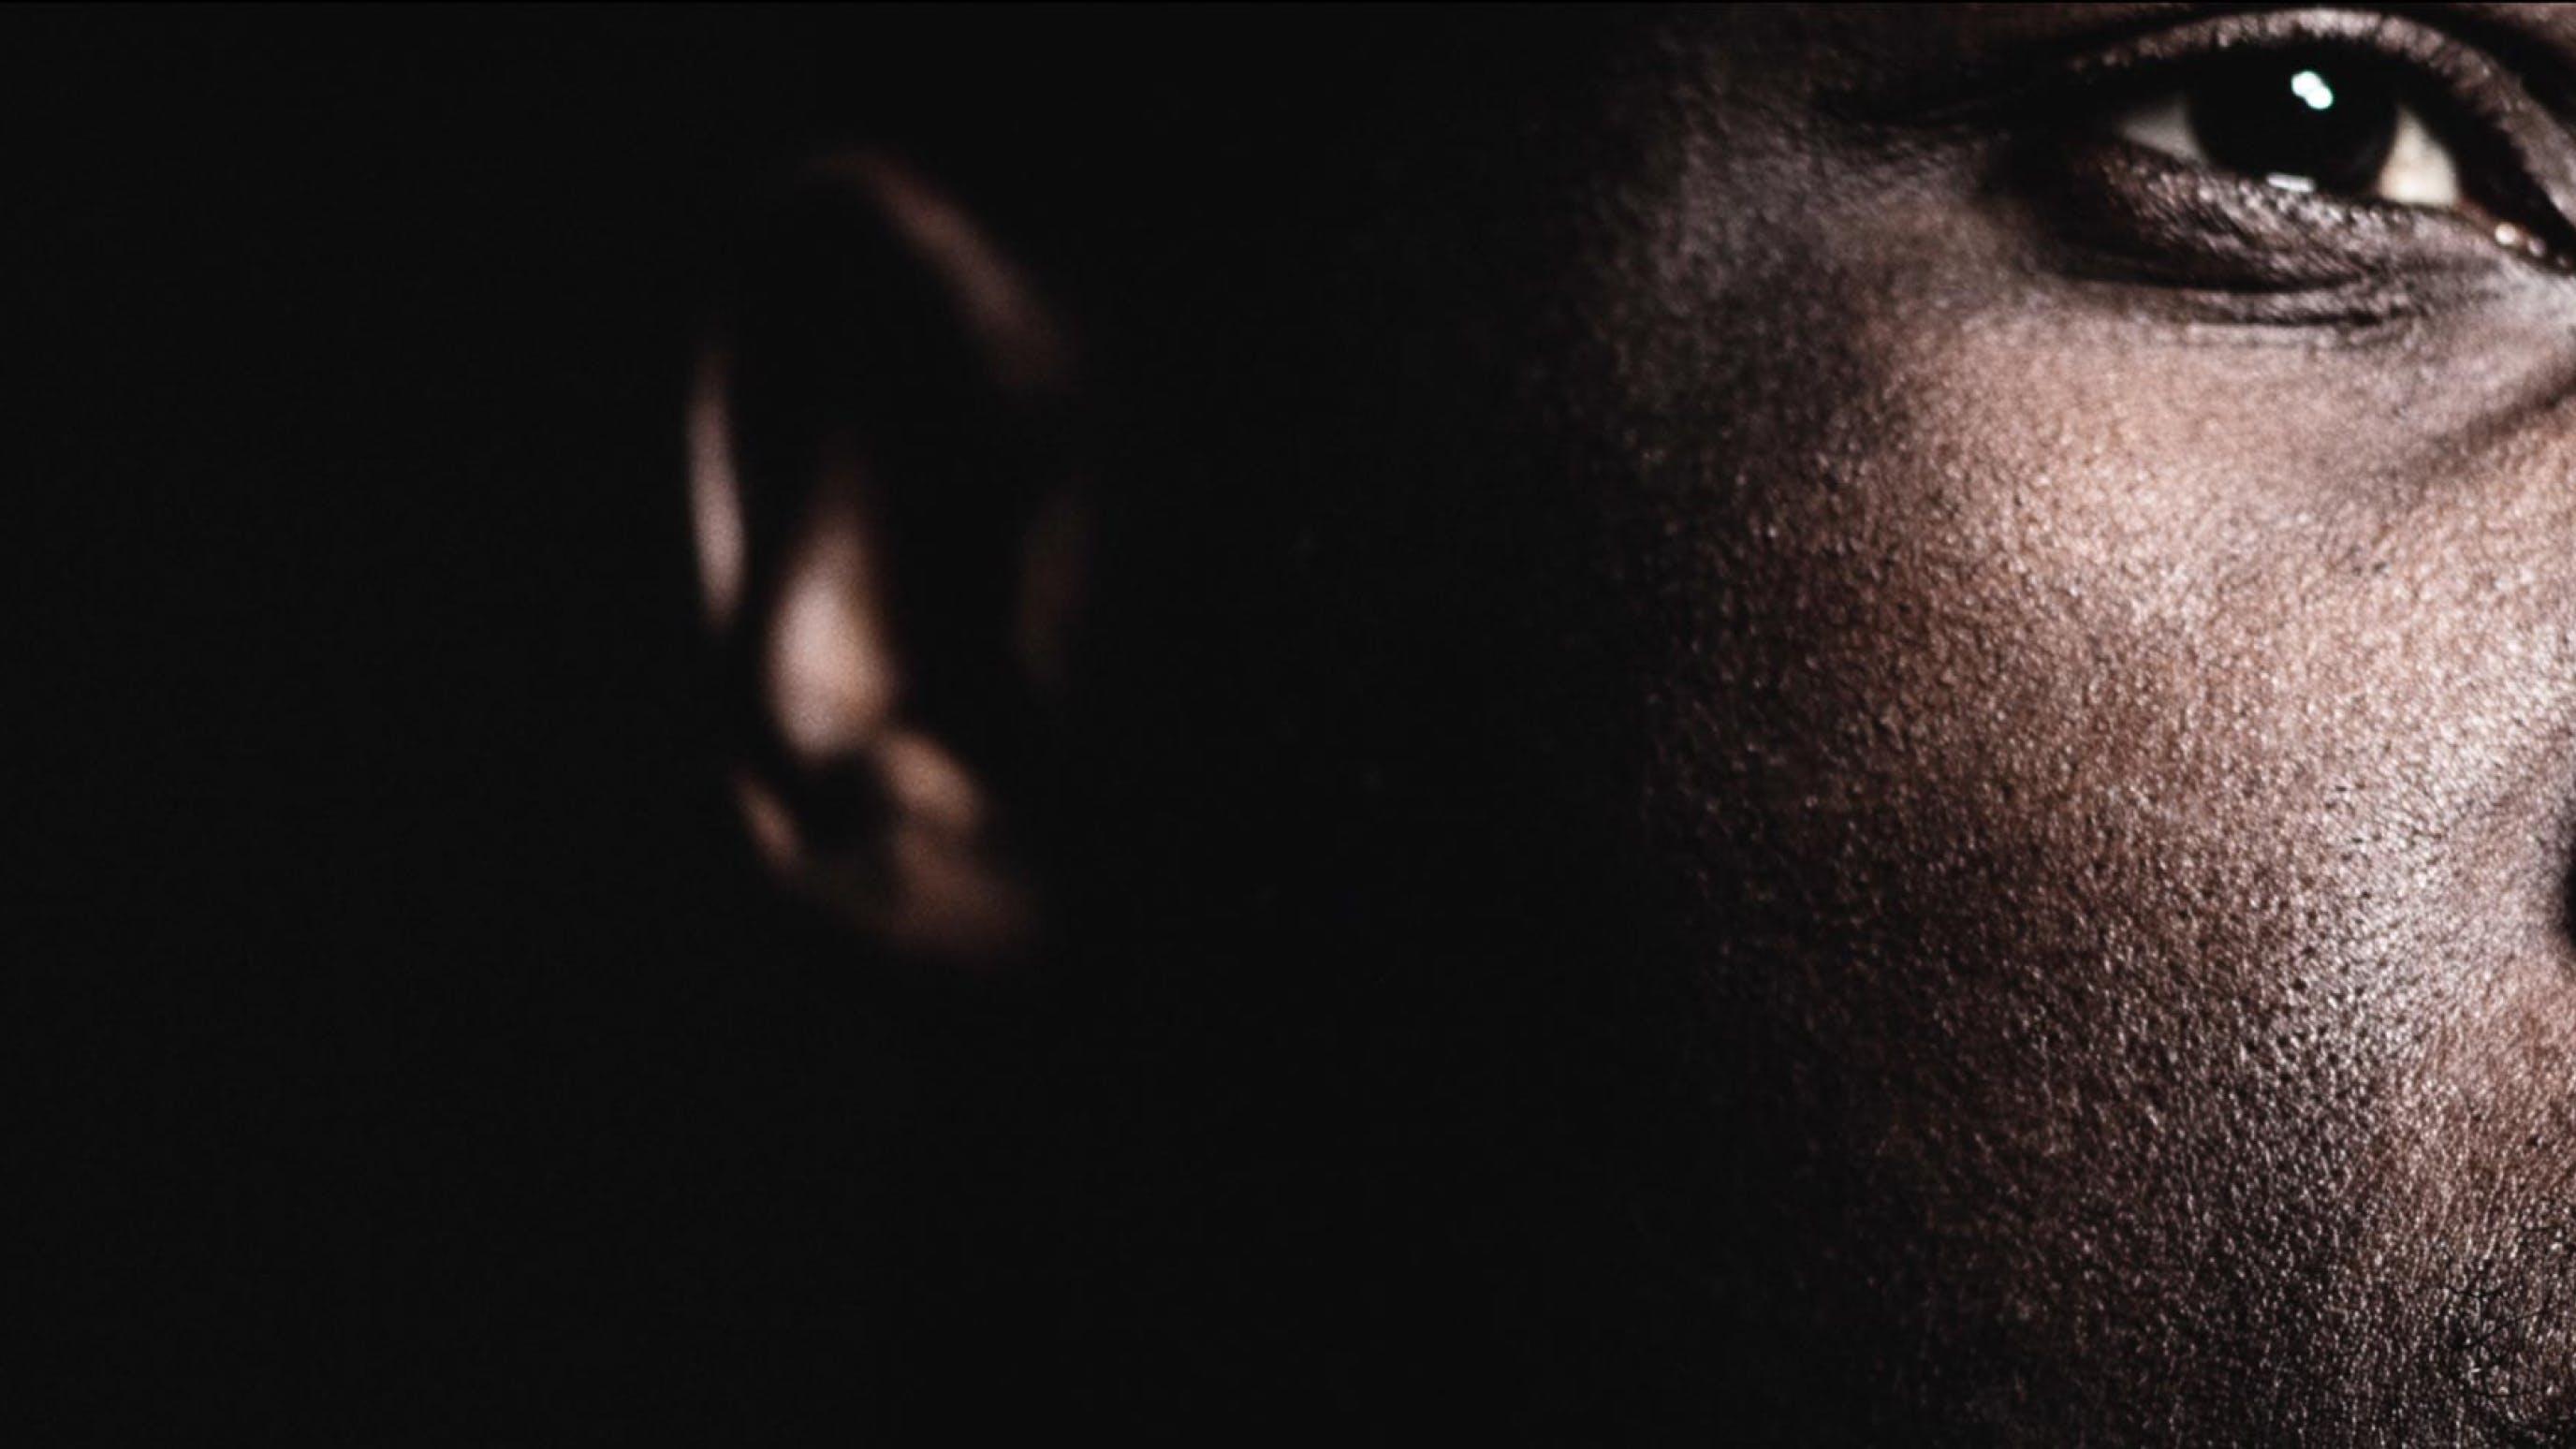 super close-up of side of person's face in front of a black background